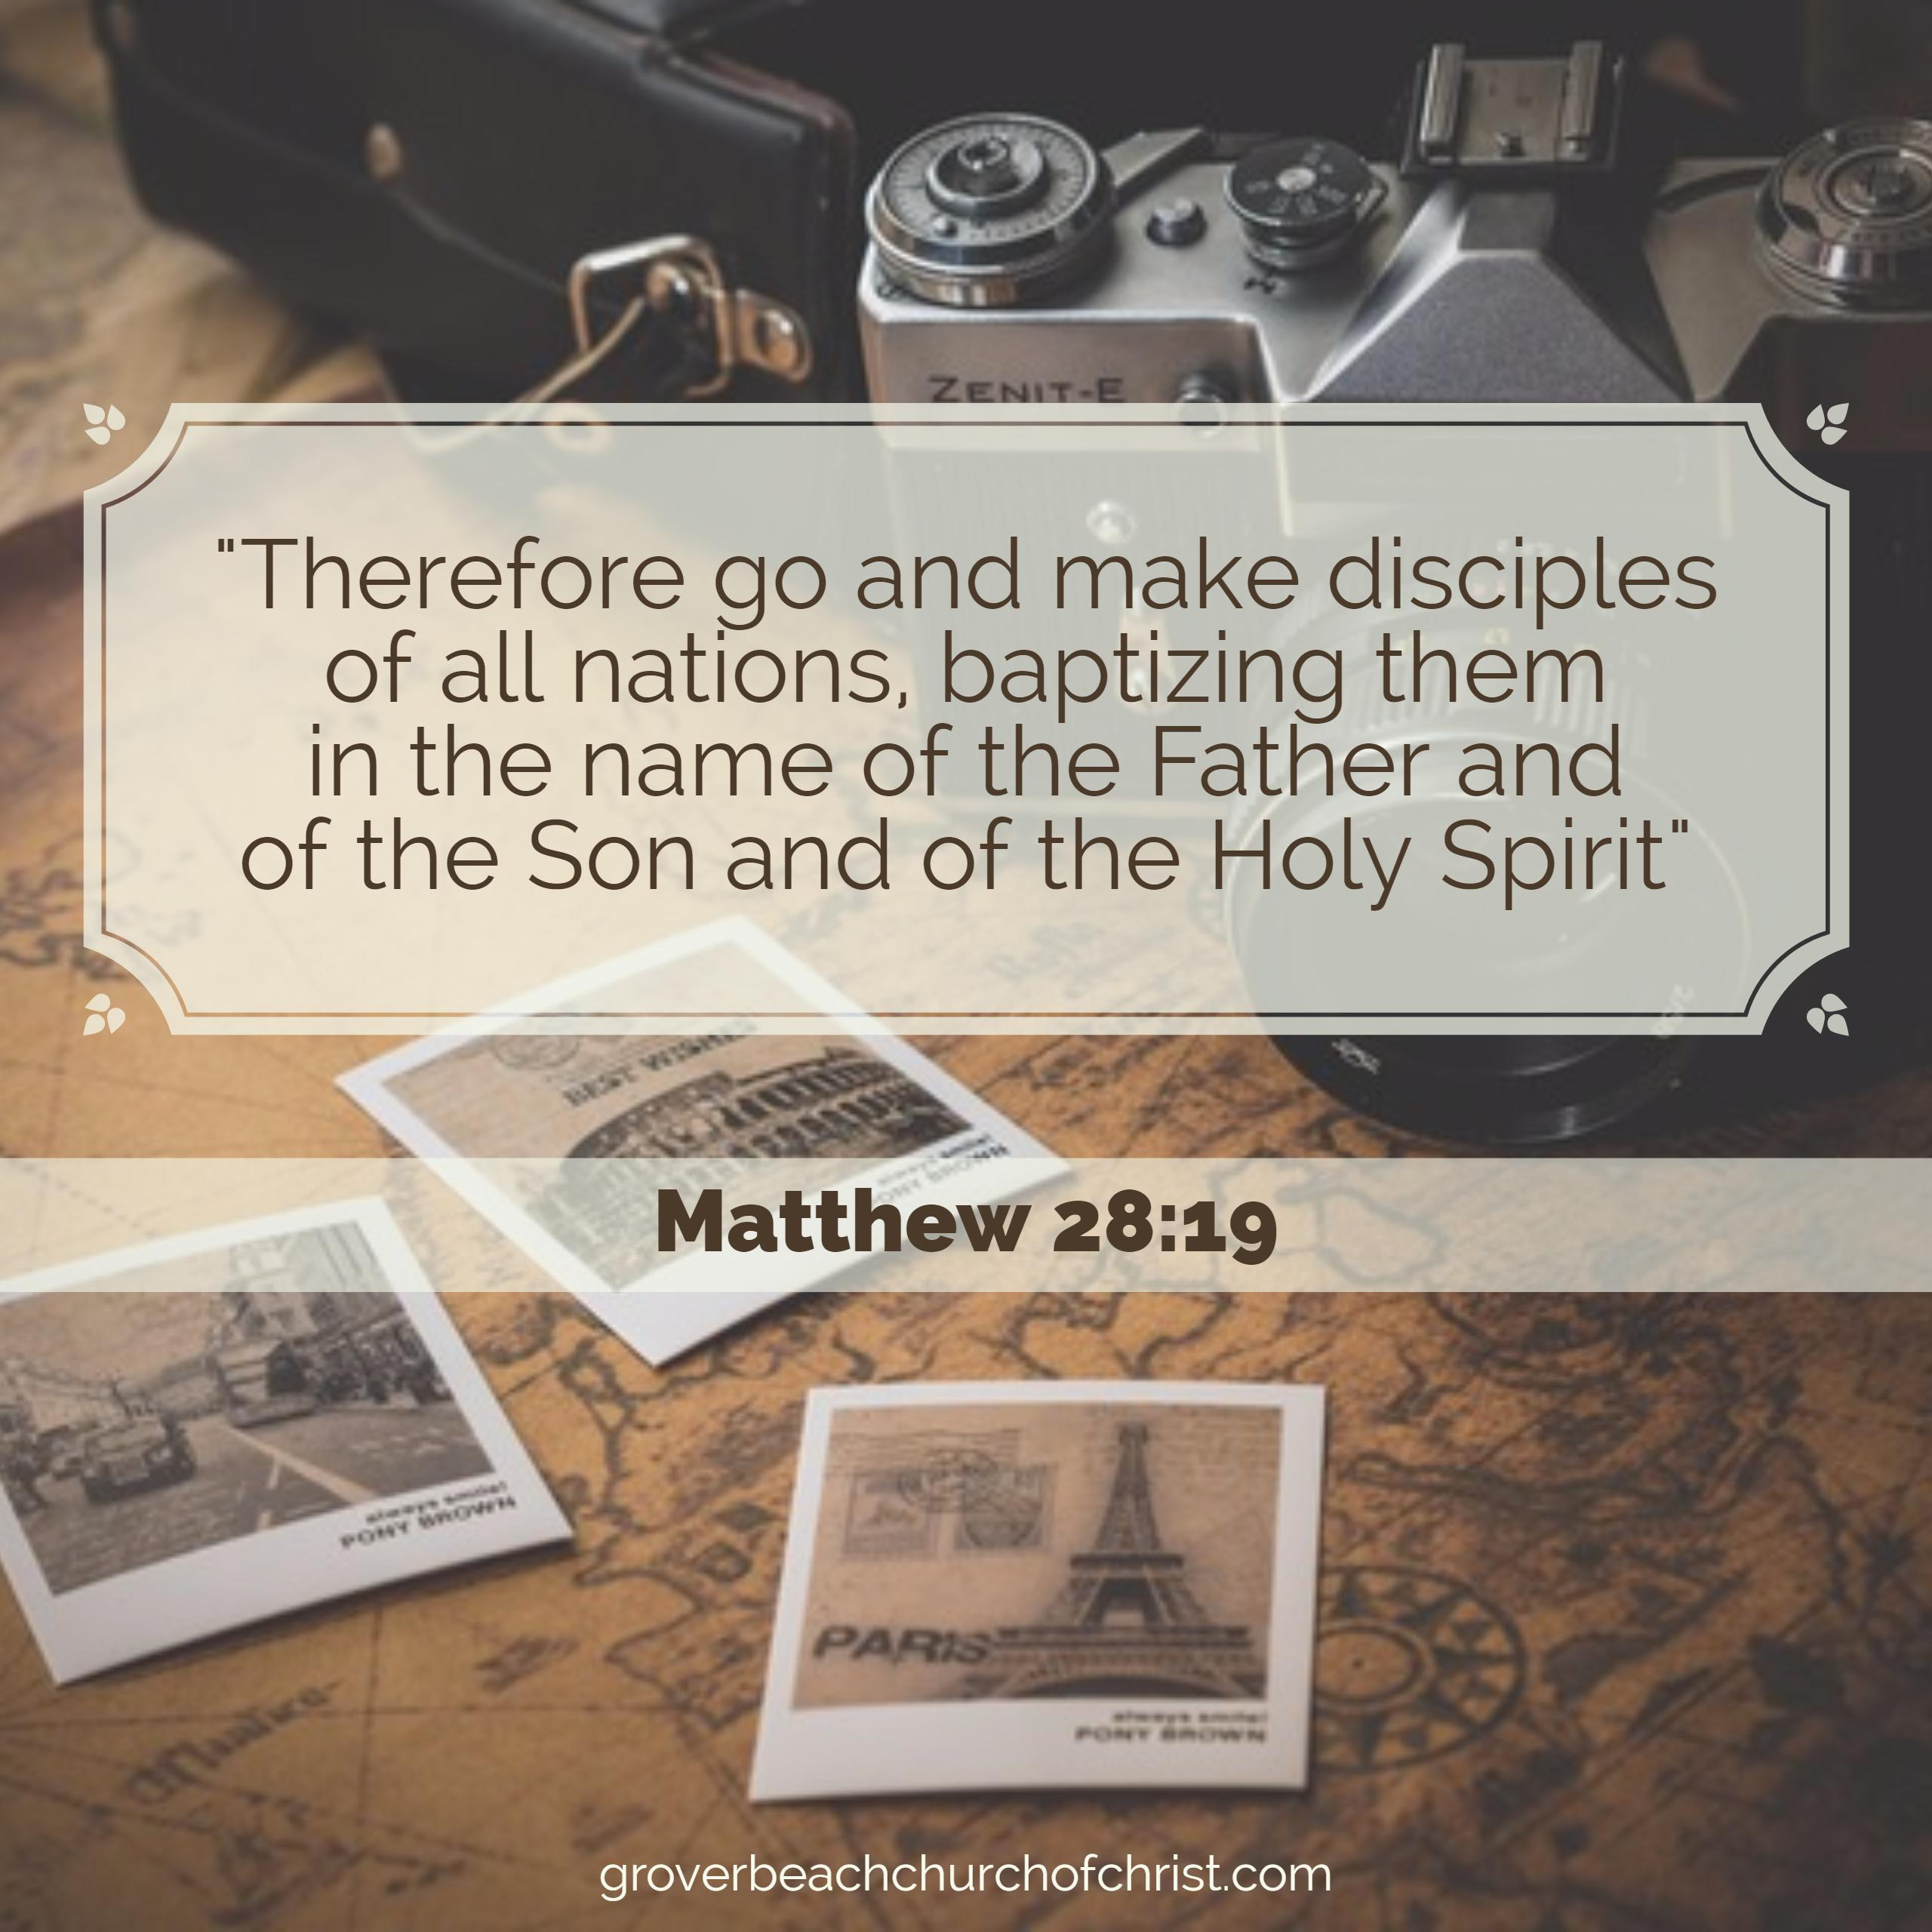 matthew-28-19-therefore-go-and-make-disciples